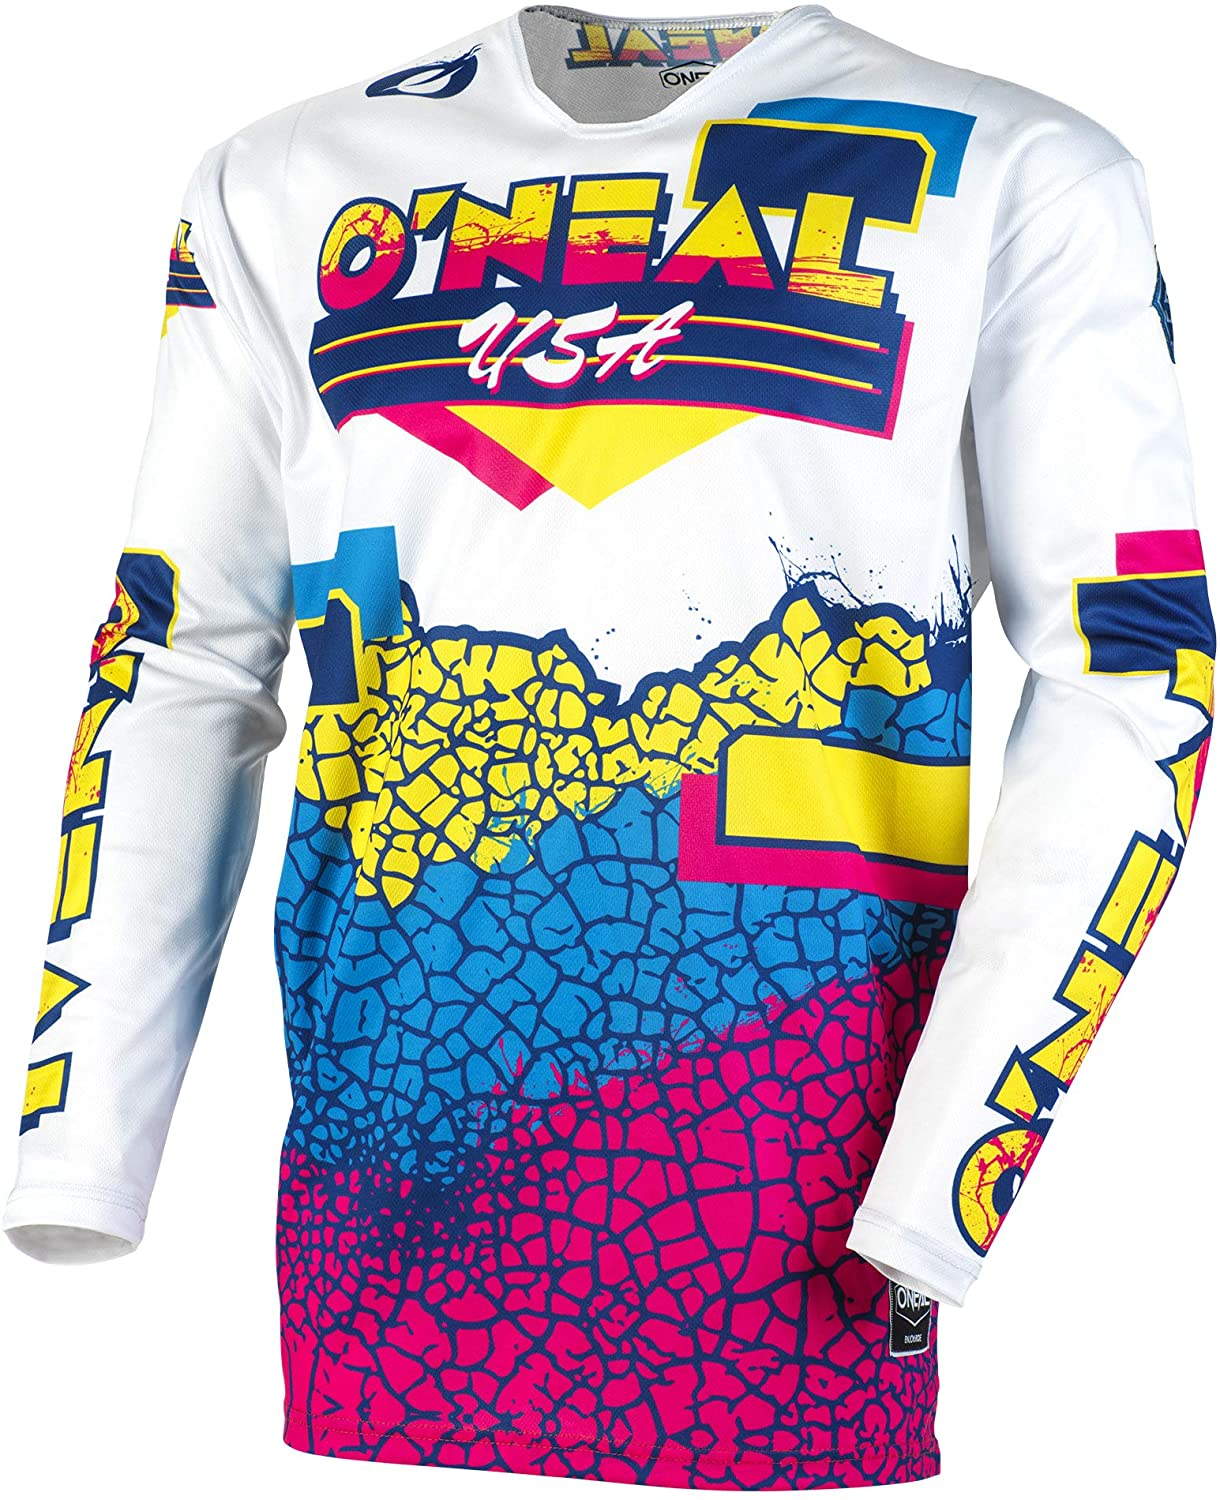 O'Neal Mayhem Crackle 91 Adult Jersey (Yellow/White/Blue, L)